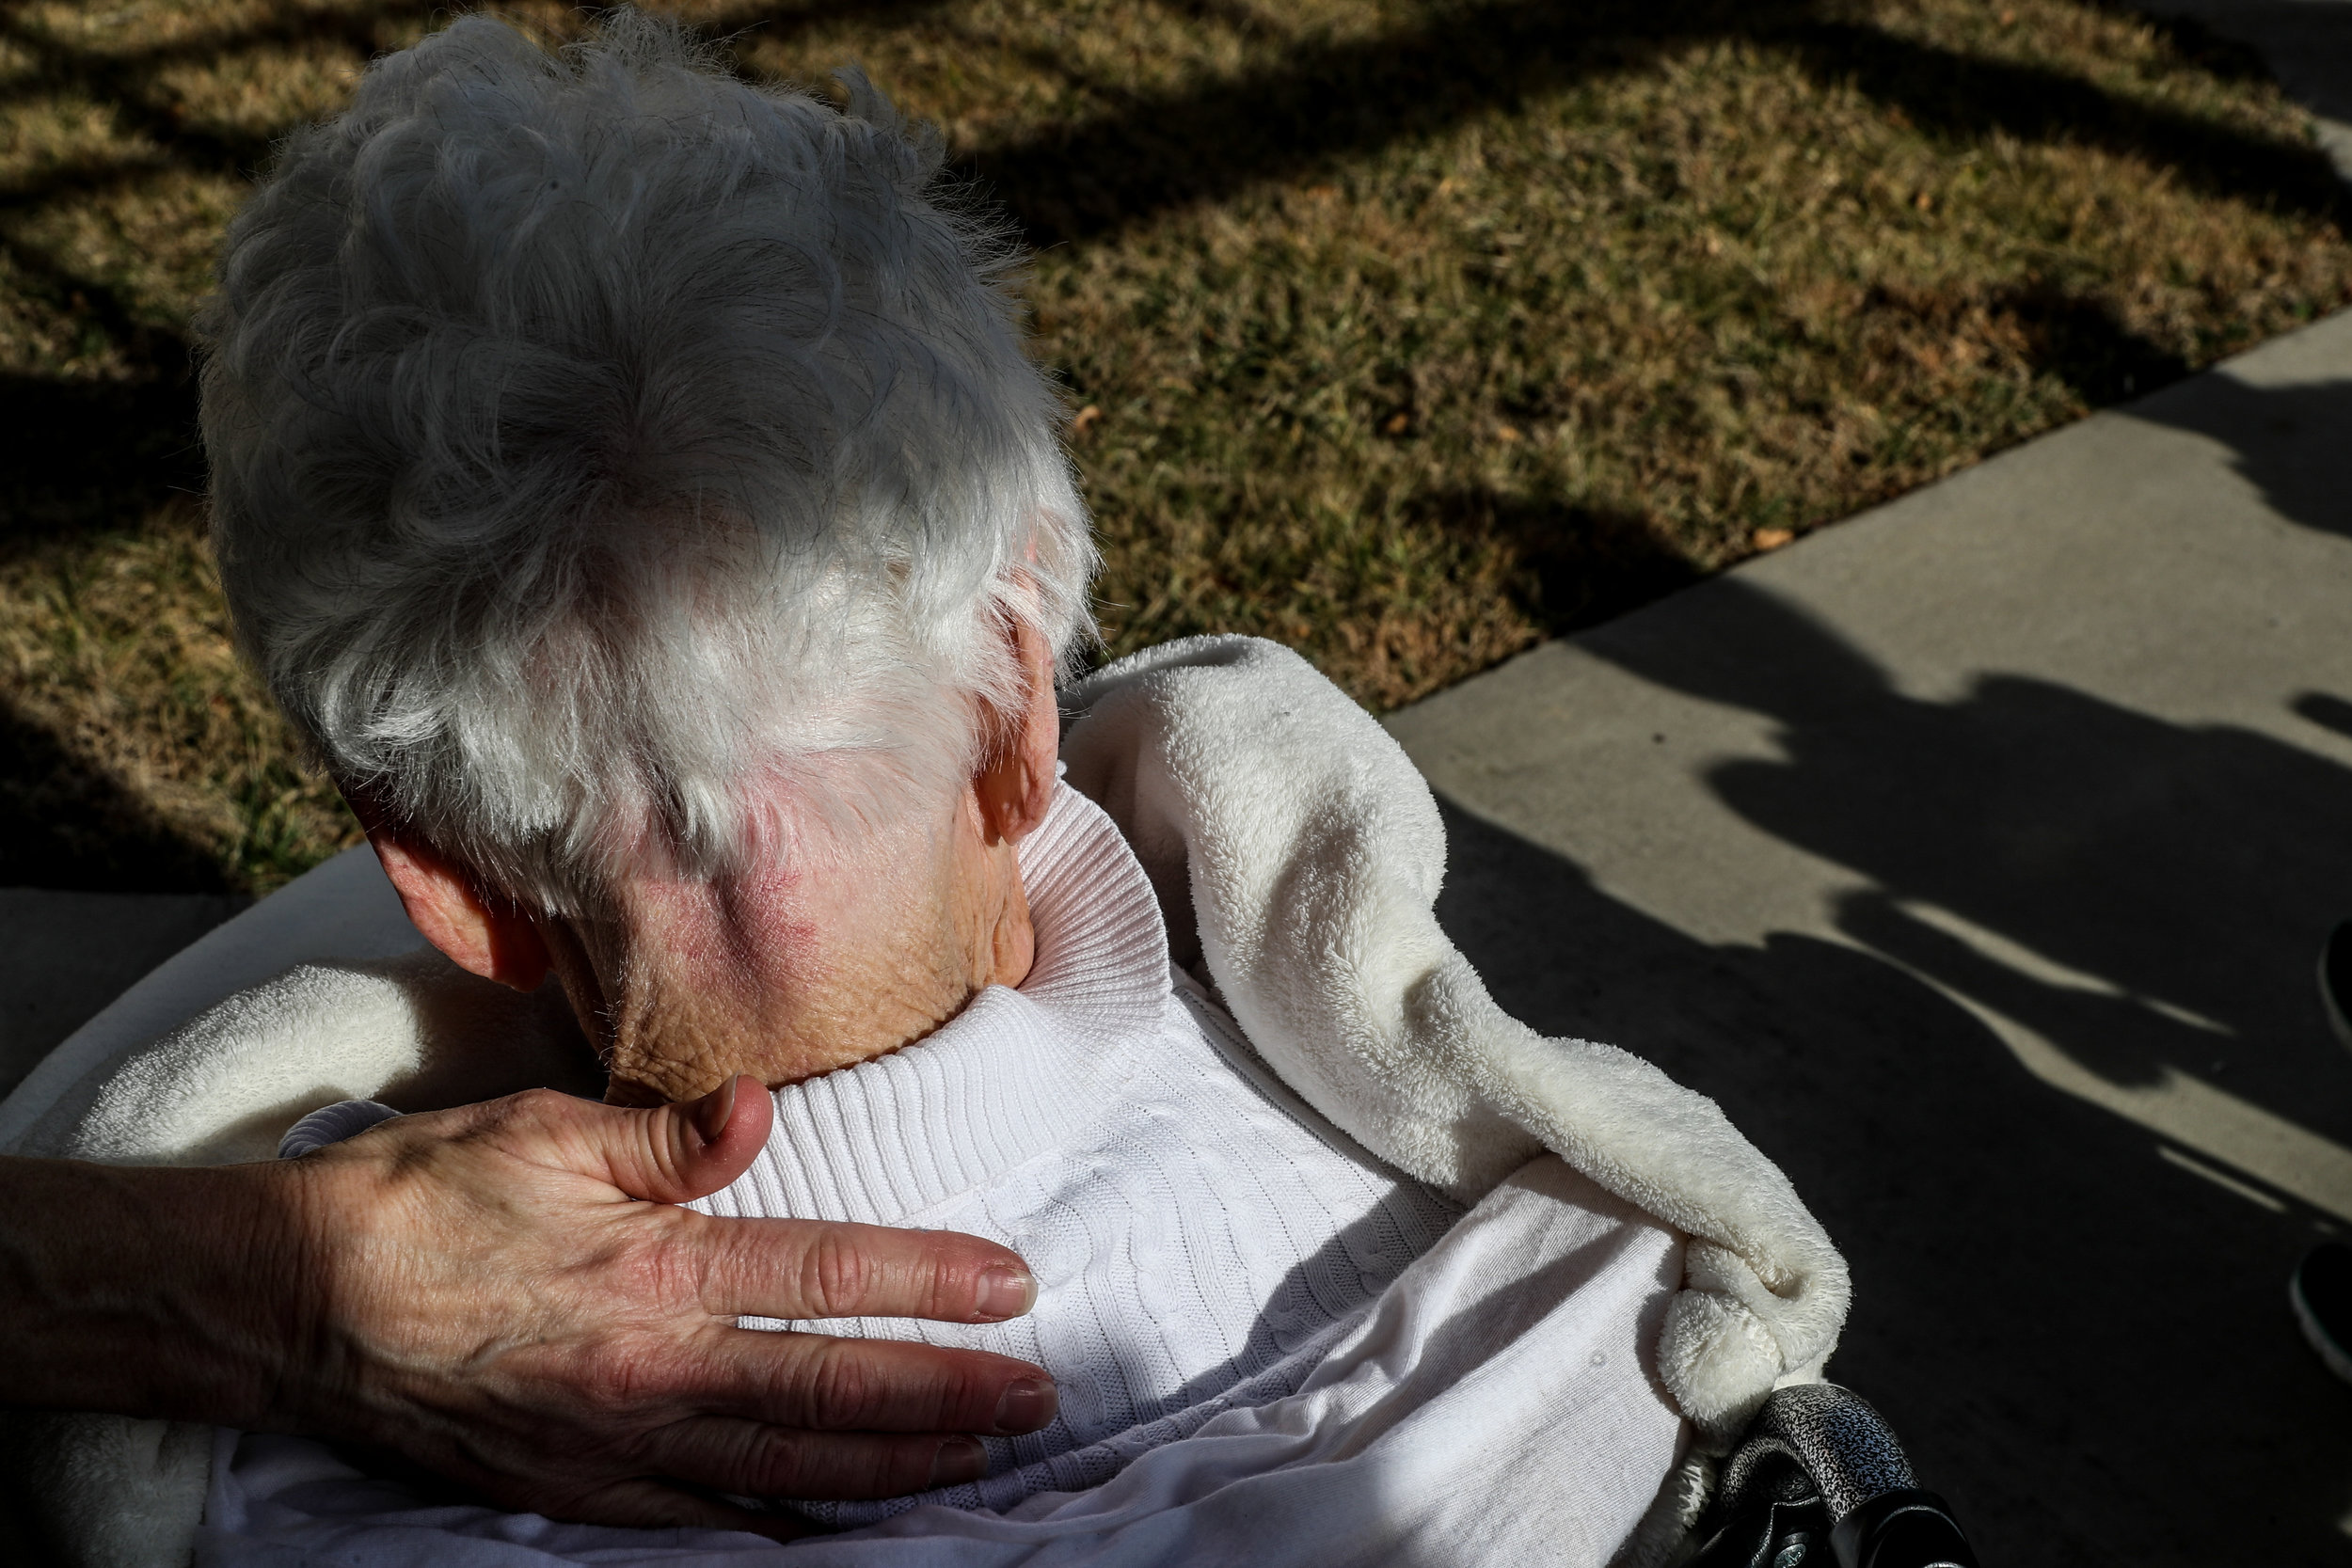 Lee Read rests her hand on Juanita Burke's, 97, neck as facility staff entertain patients outside on a sunny day at the RoseWood Village assisted living home at Hollymead Town Center. Burke, who had little strength left, died several days later.